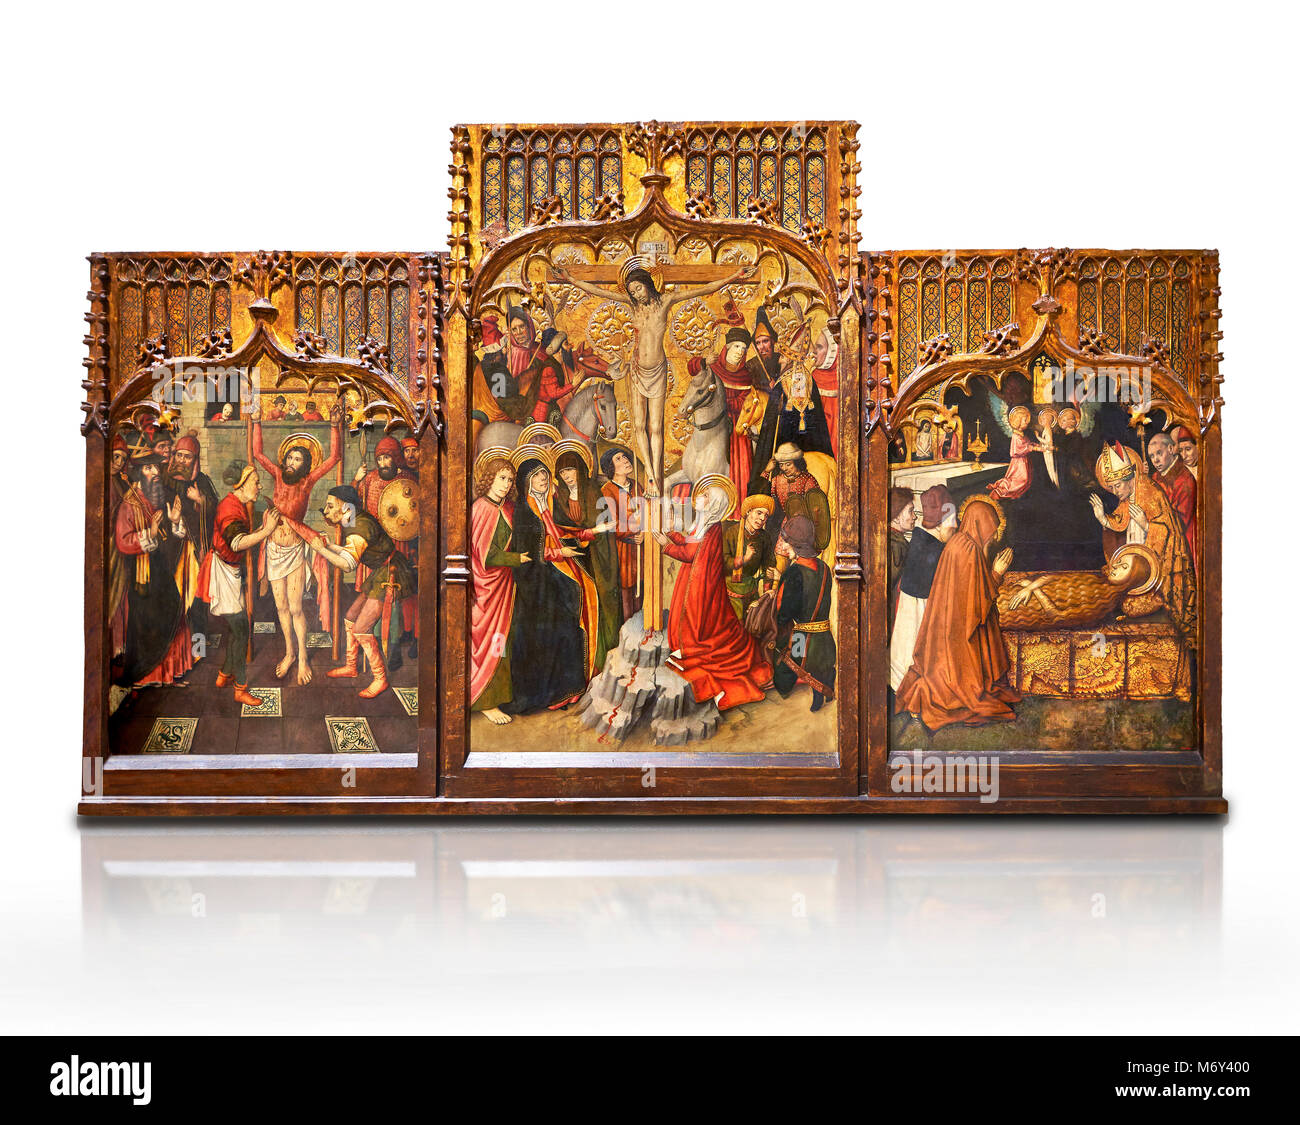 Gothic Catalan altarpiece of, left to right, the martydom of St Bartholomew, Calvaty and the deat of St Mary Magdelene, - Stock Image